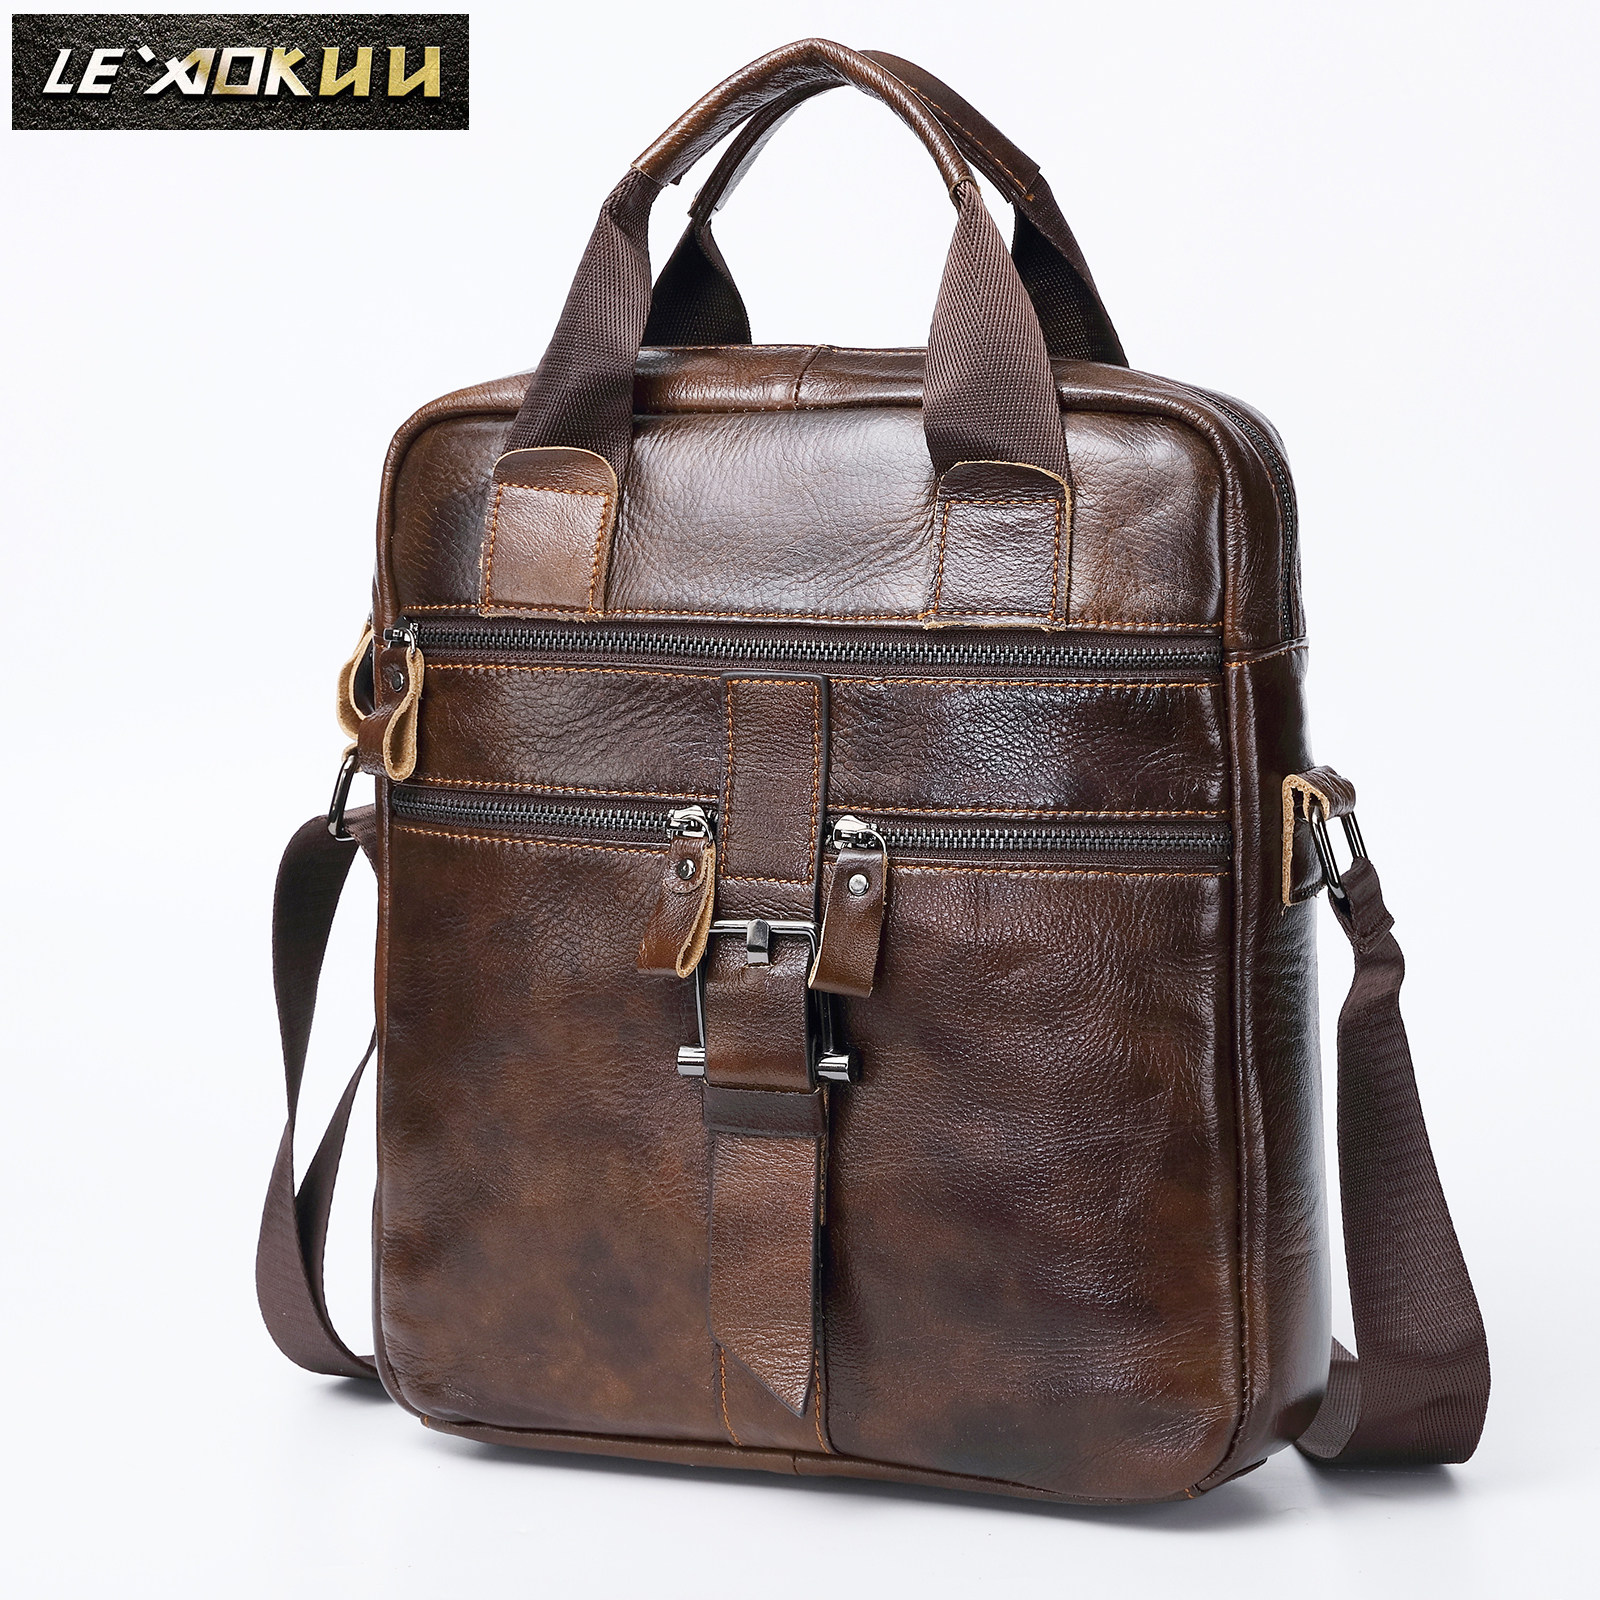 "Quality Original Leather Male Casual Shoulder Messenger bag Cowhide Fashion Cross body Bag 9"" Pad Tote Mochila Satchel bag 1062